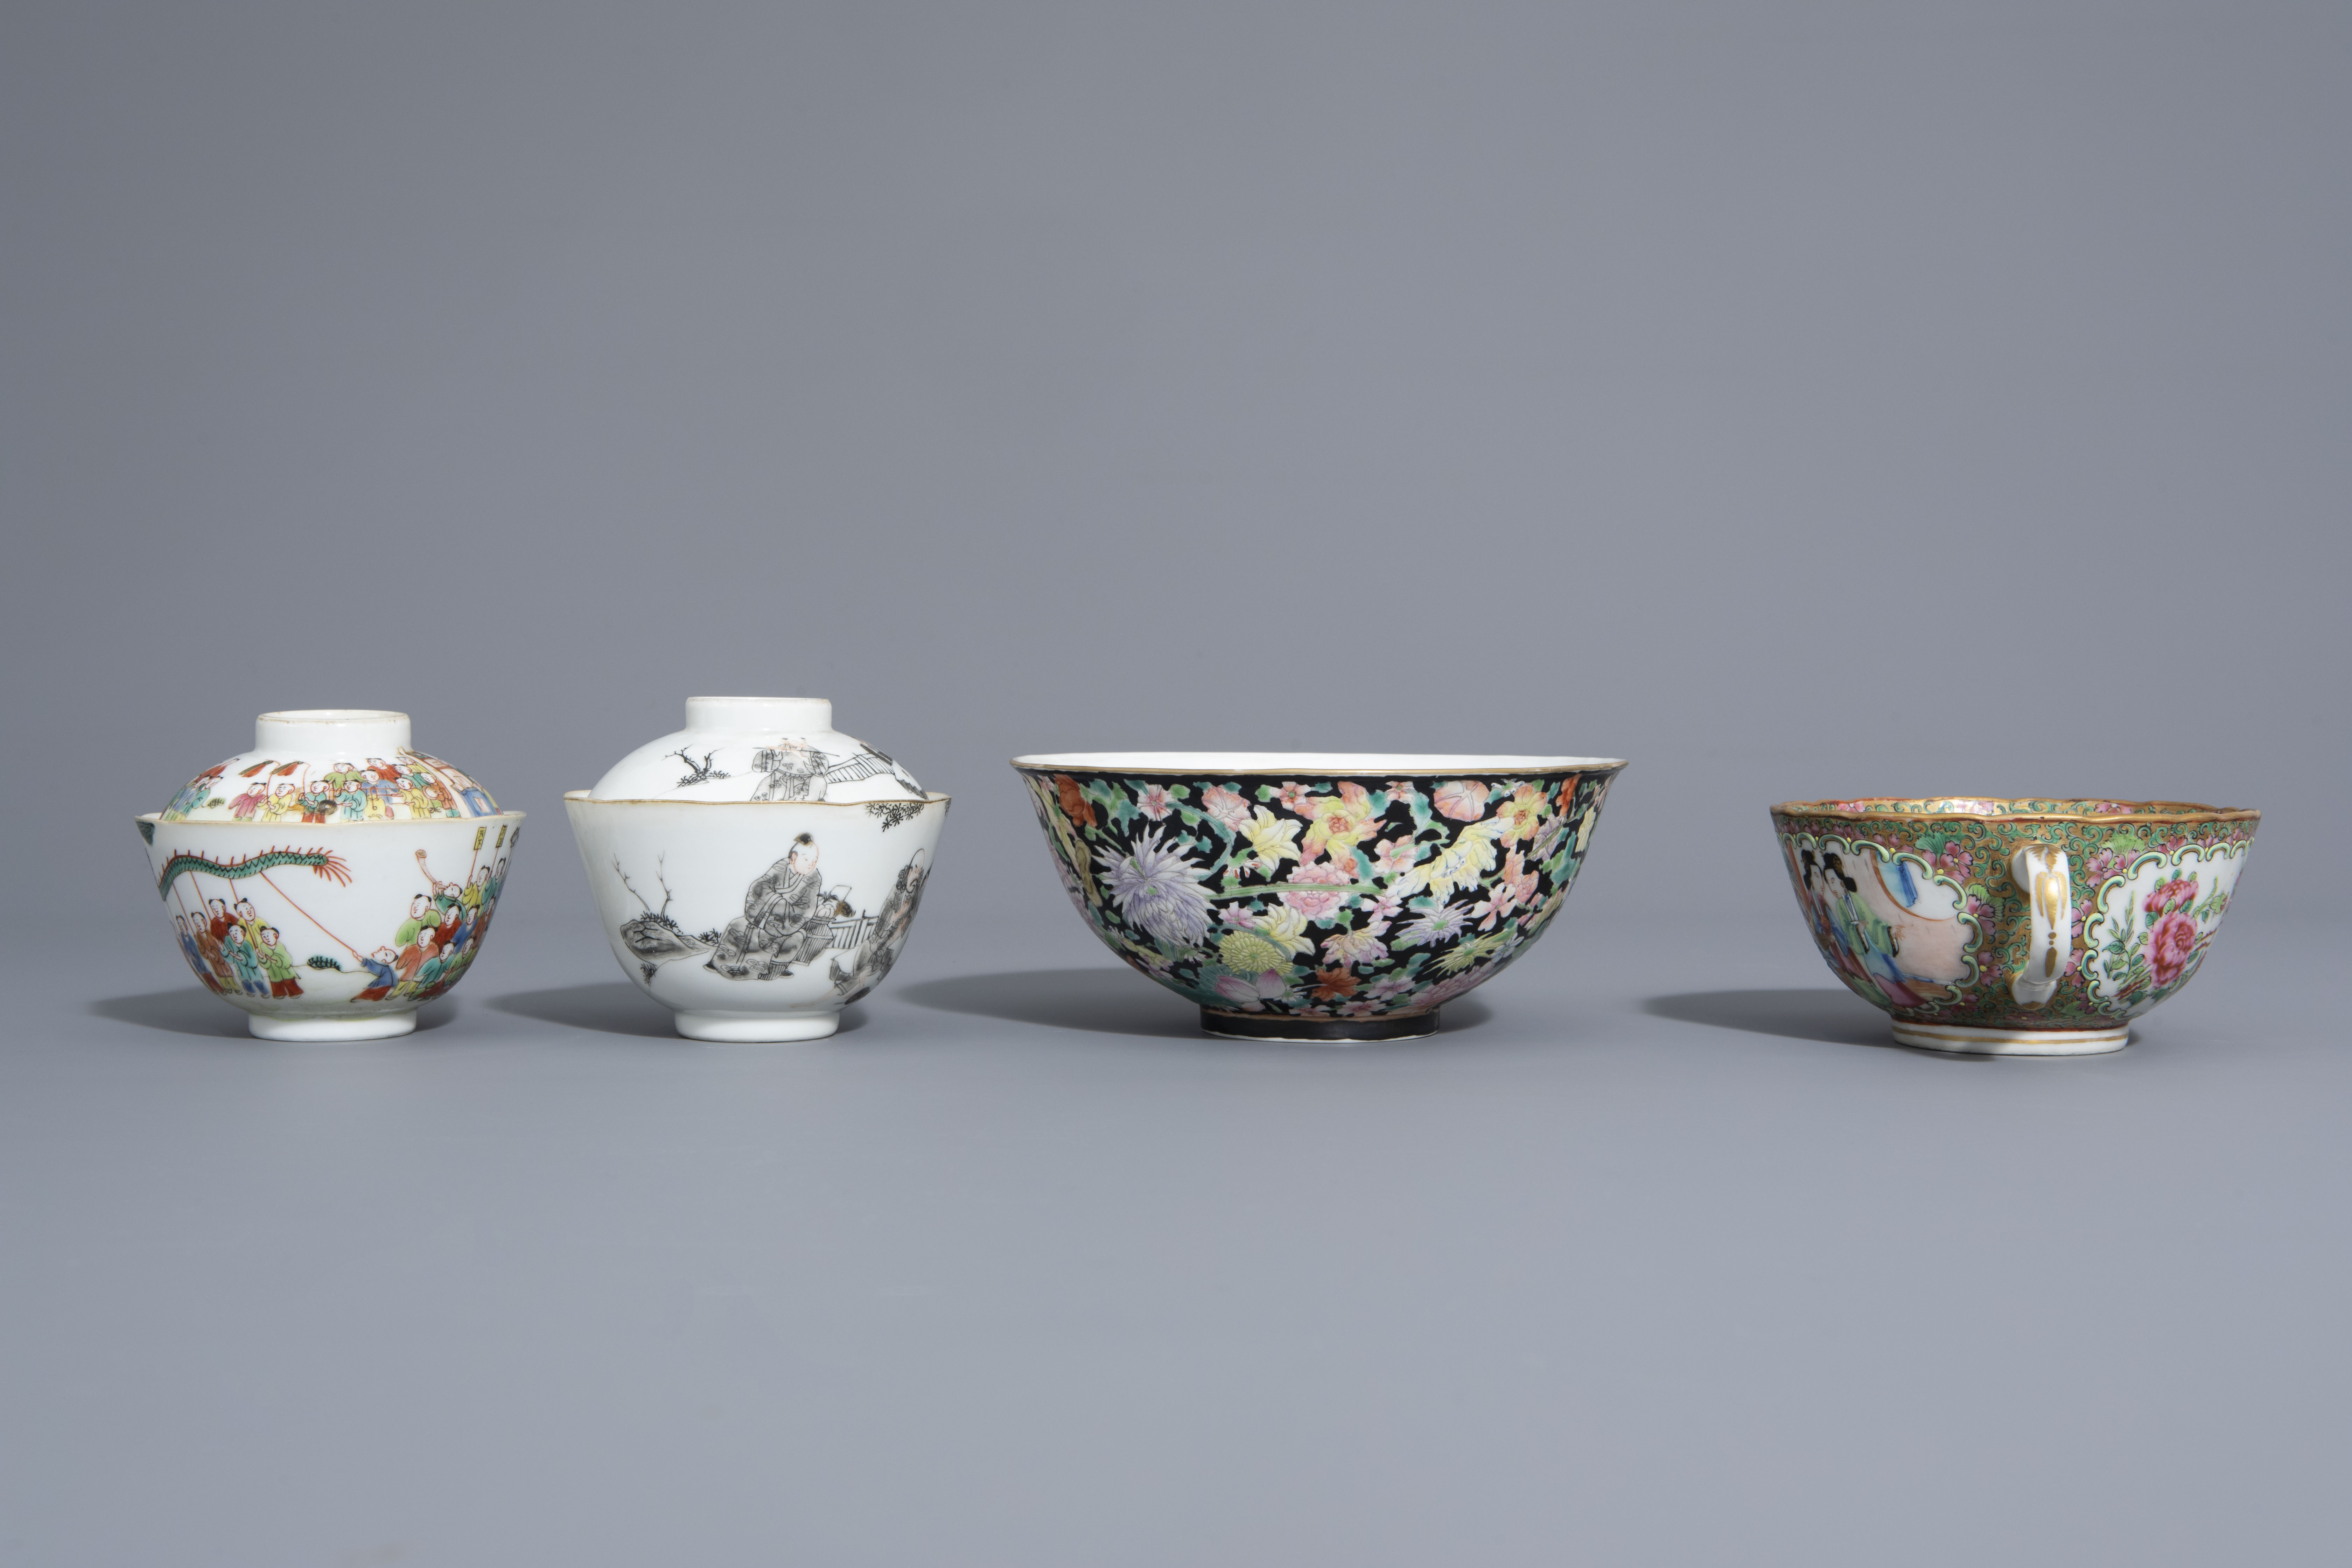 Three Chinese famille rose and grisaille bowls and a Canton bowl on stand, 19th/20th C. - Image 3 of 9